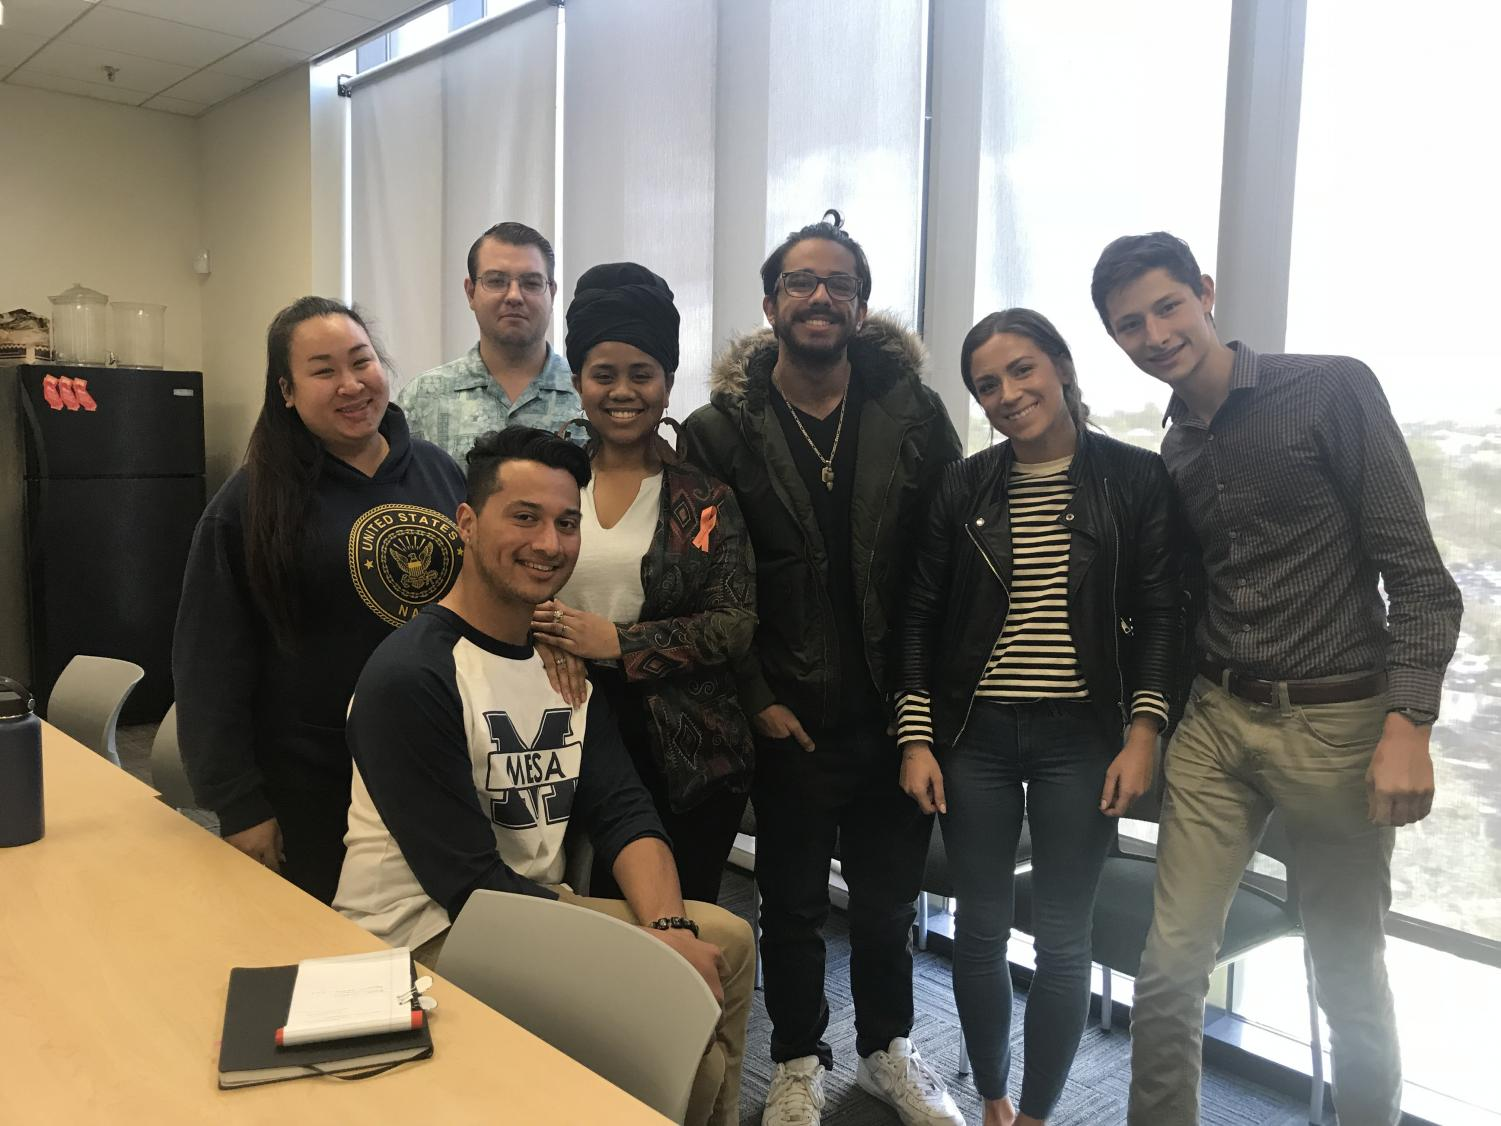 Seven out of the nine newly elected AS Senators: (left to right)May Nguyen, Timothy Ackerson, Rene Murillo, Jade Robinson, Baktash Olomi, Emilie Bengtsson, and Theo Douwes.